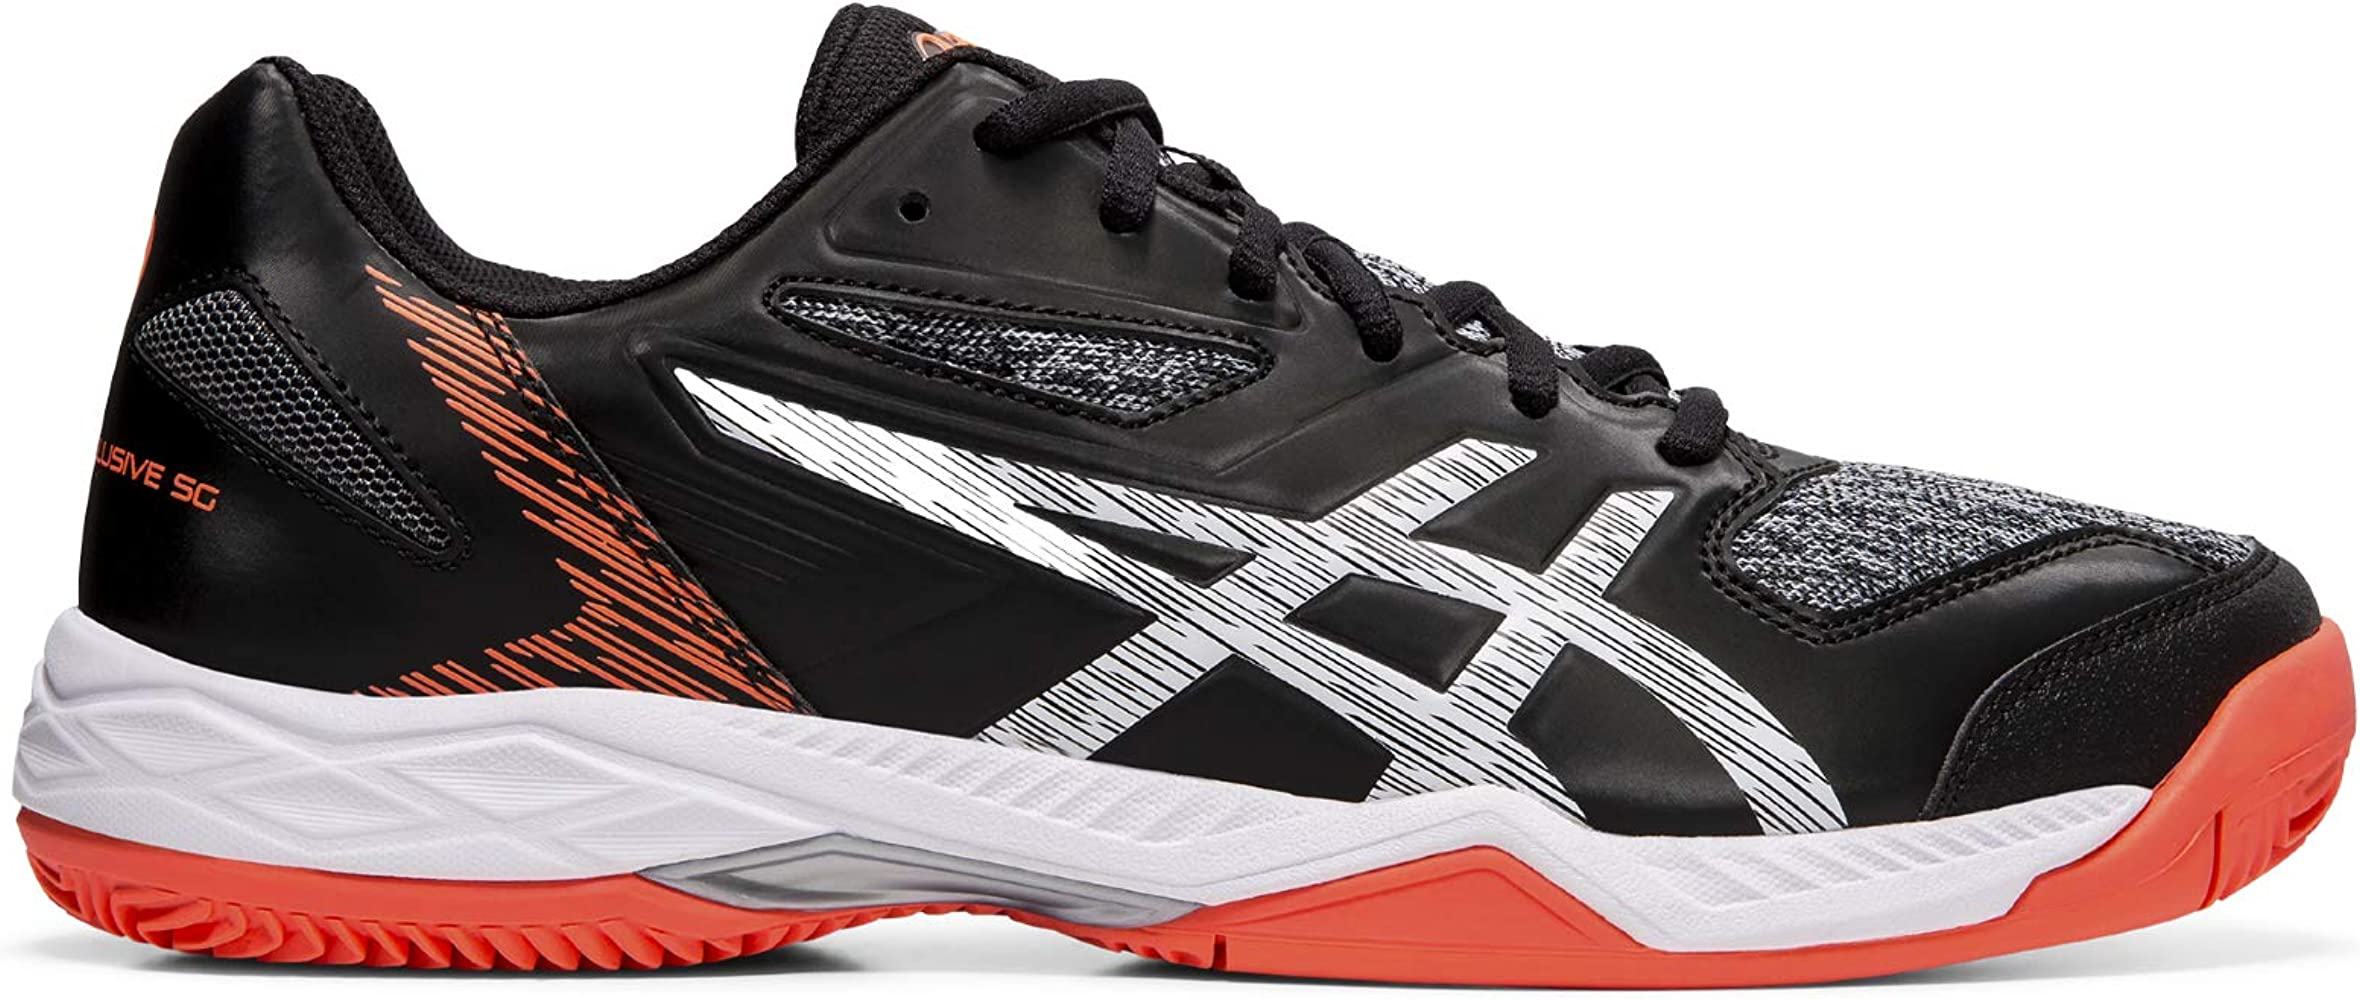 ASICS Chaussures Gel-Padel Exclusive 5 SG: Amazon.es ...